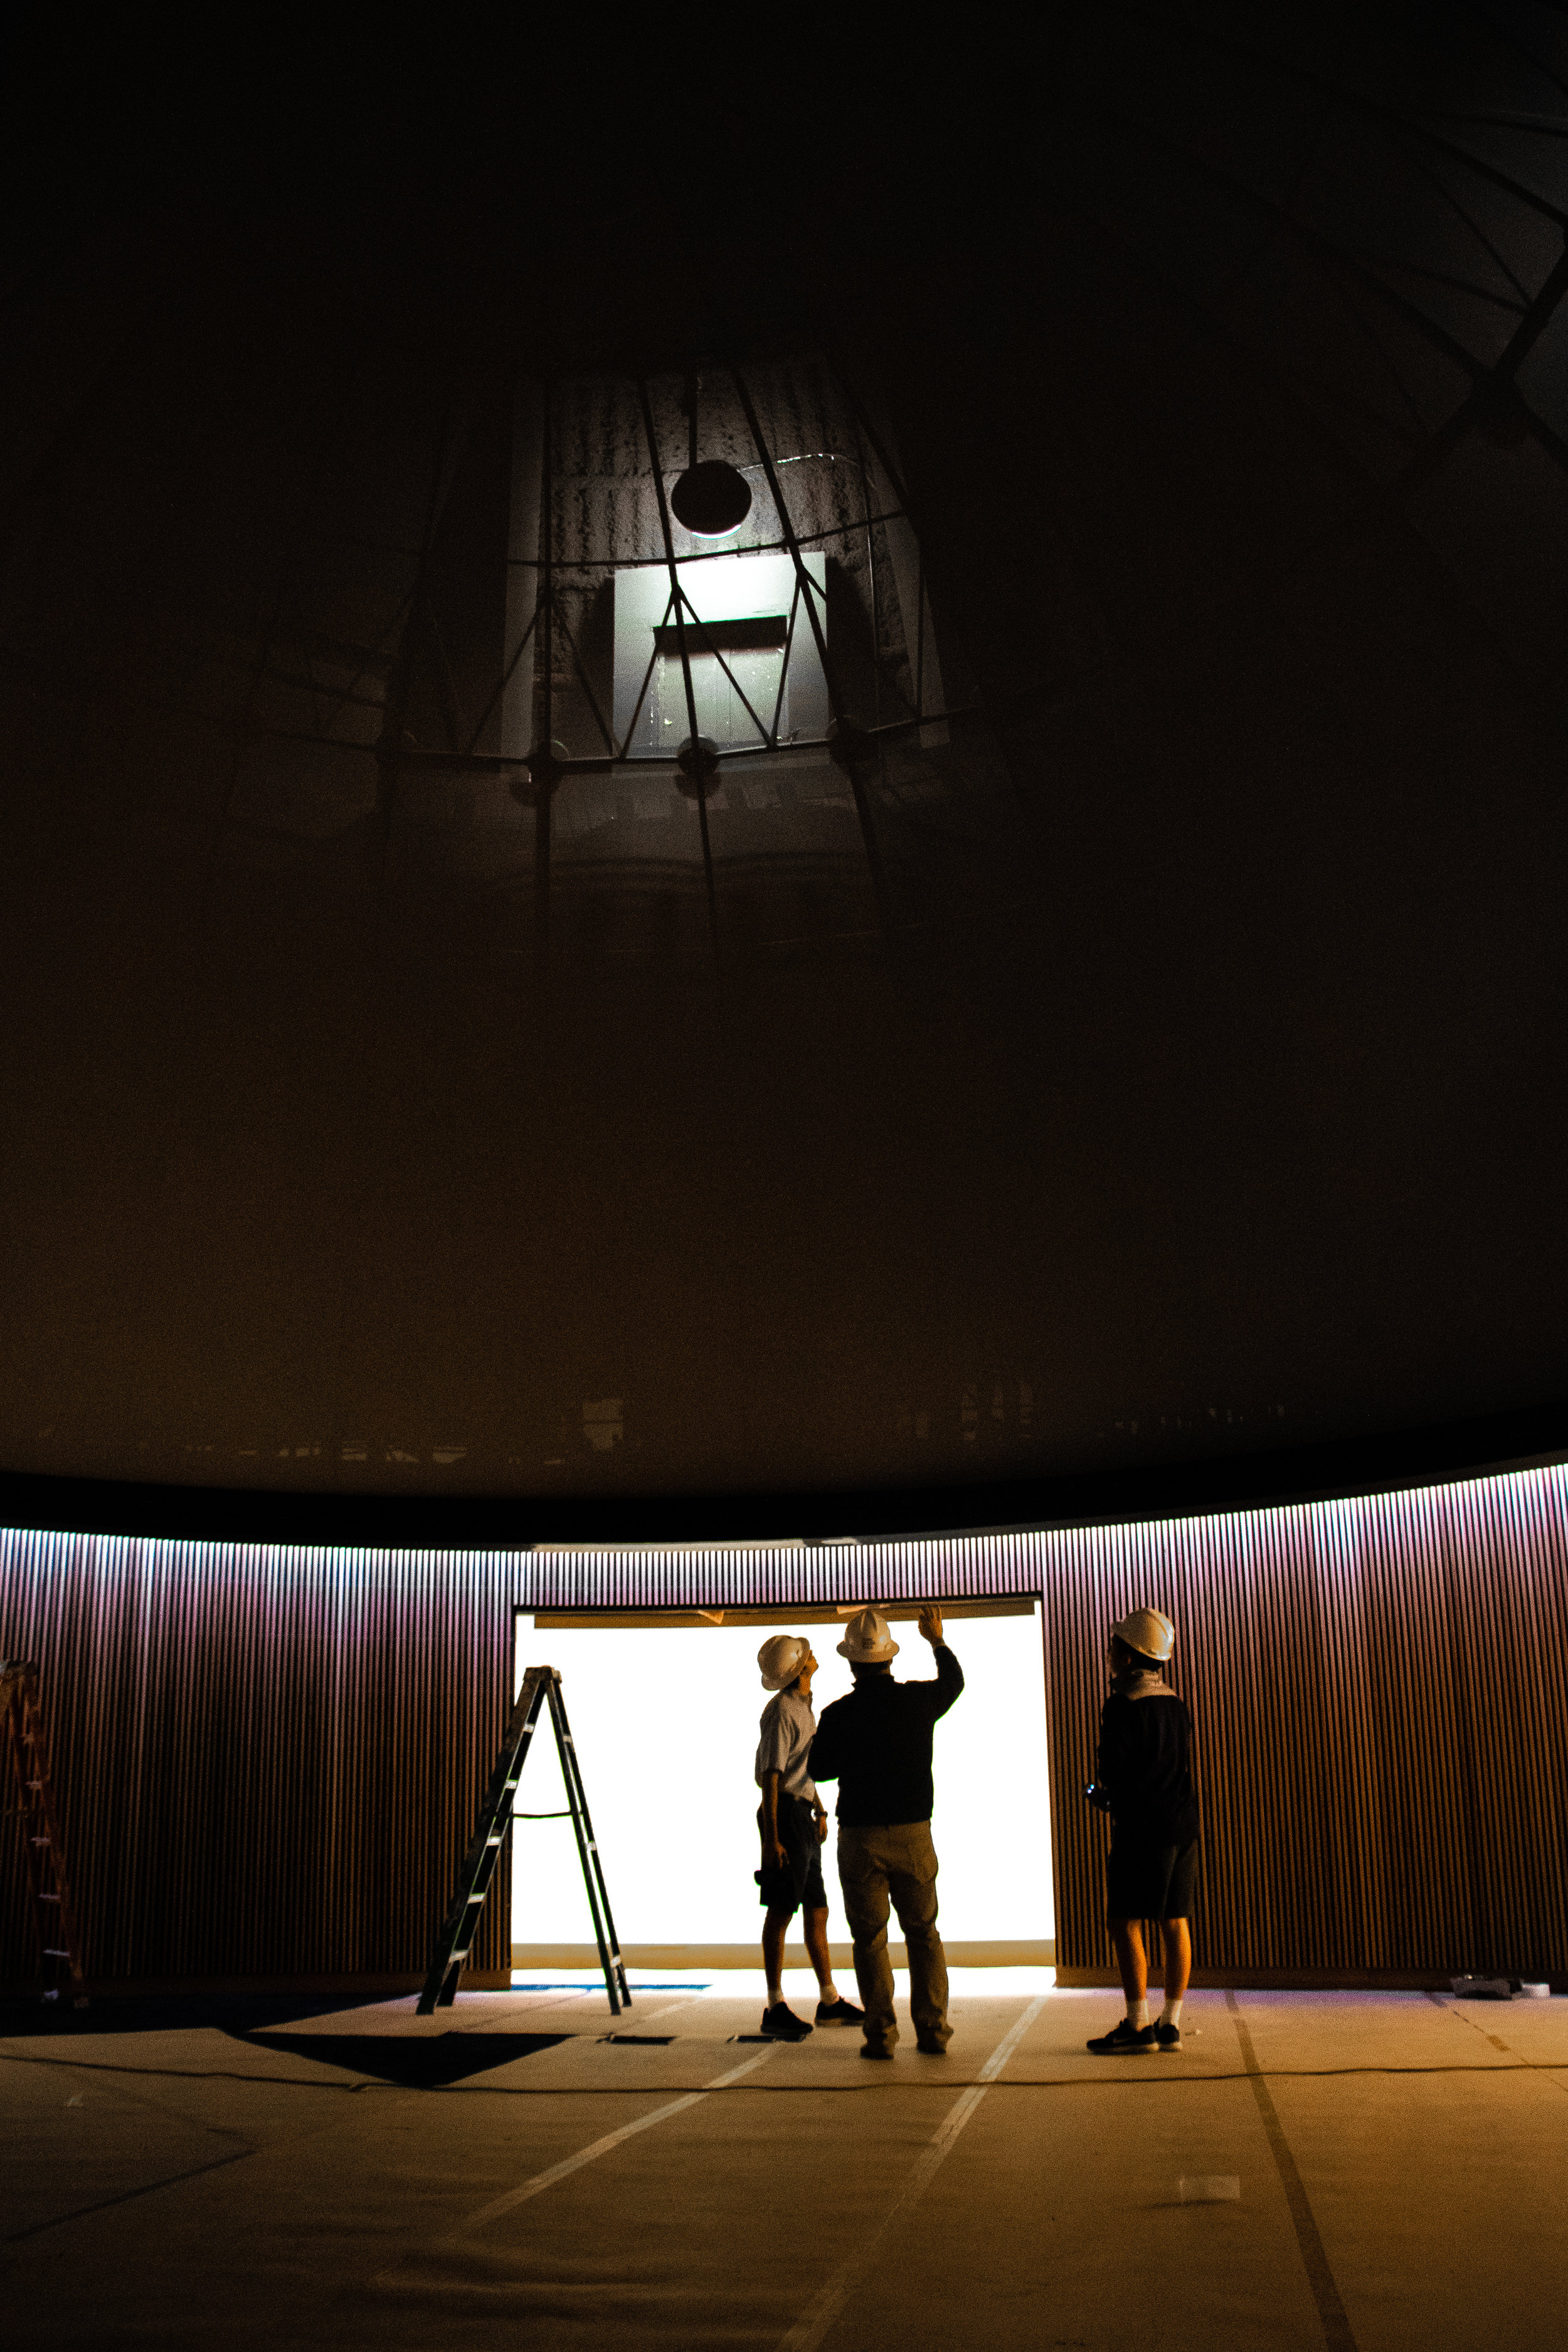 Looking up at the still unfinished dome, Headmaster David Dini points out features of the new planetarium. The planetarium features a new projector and redone seating in order to provide a more viewer-friendly environment when the room is full.